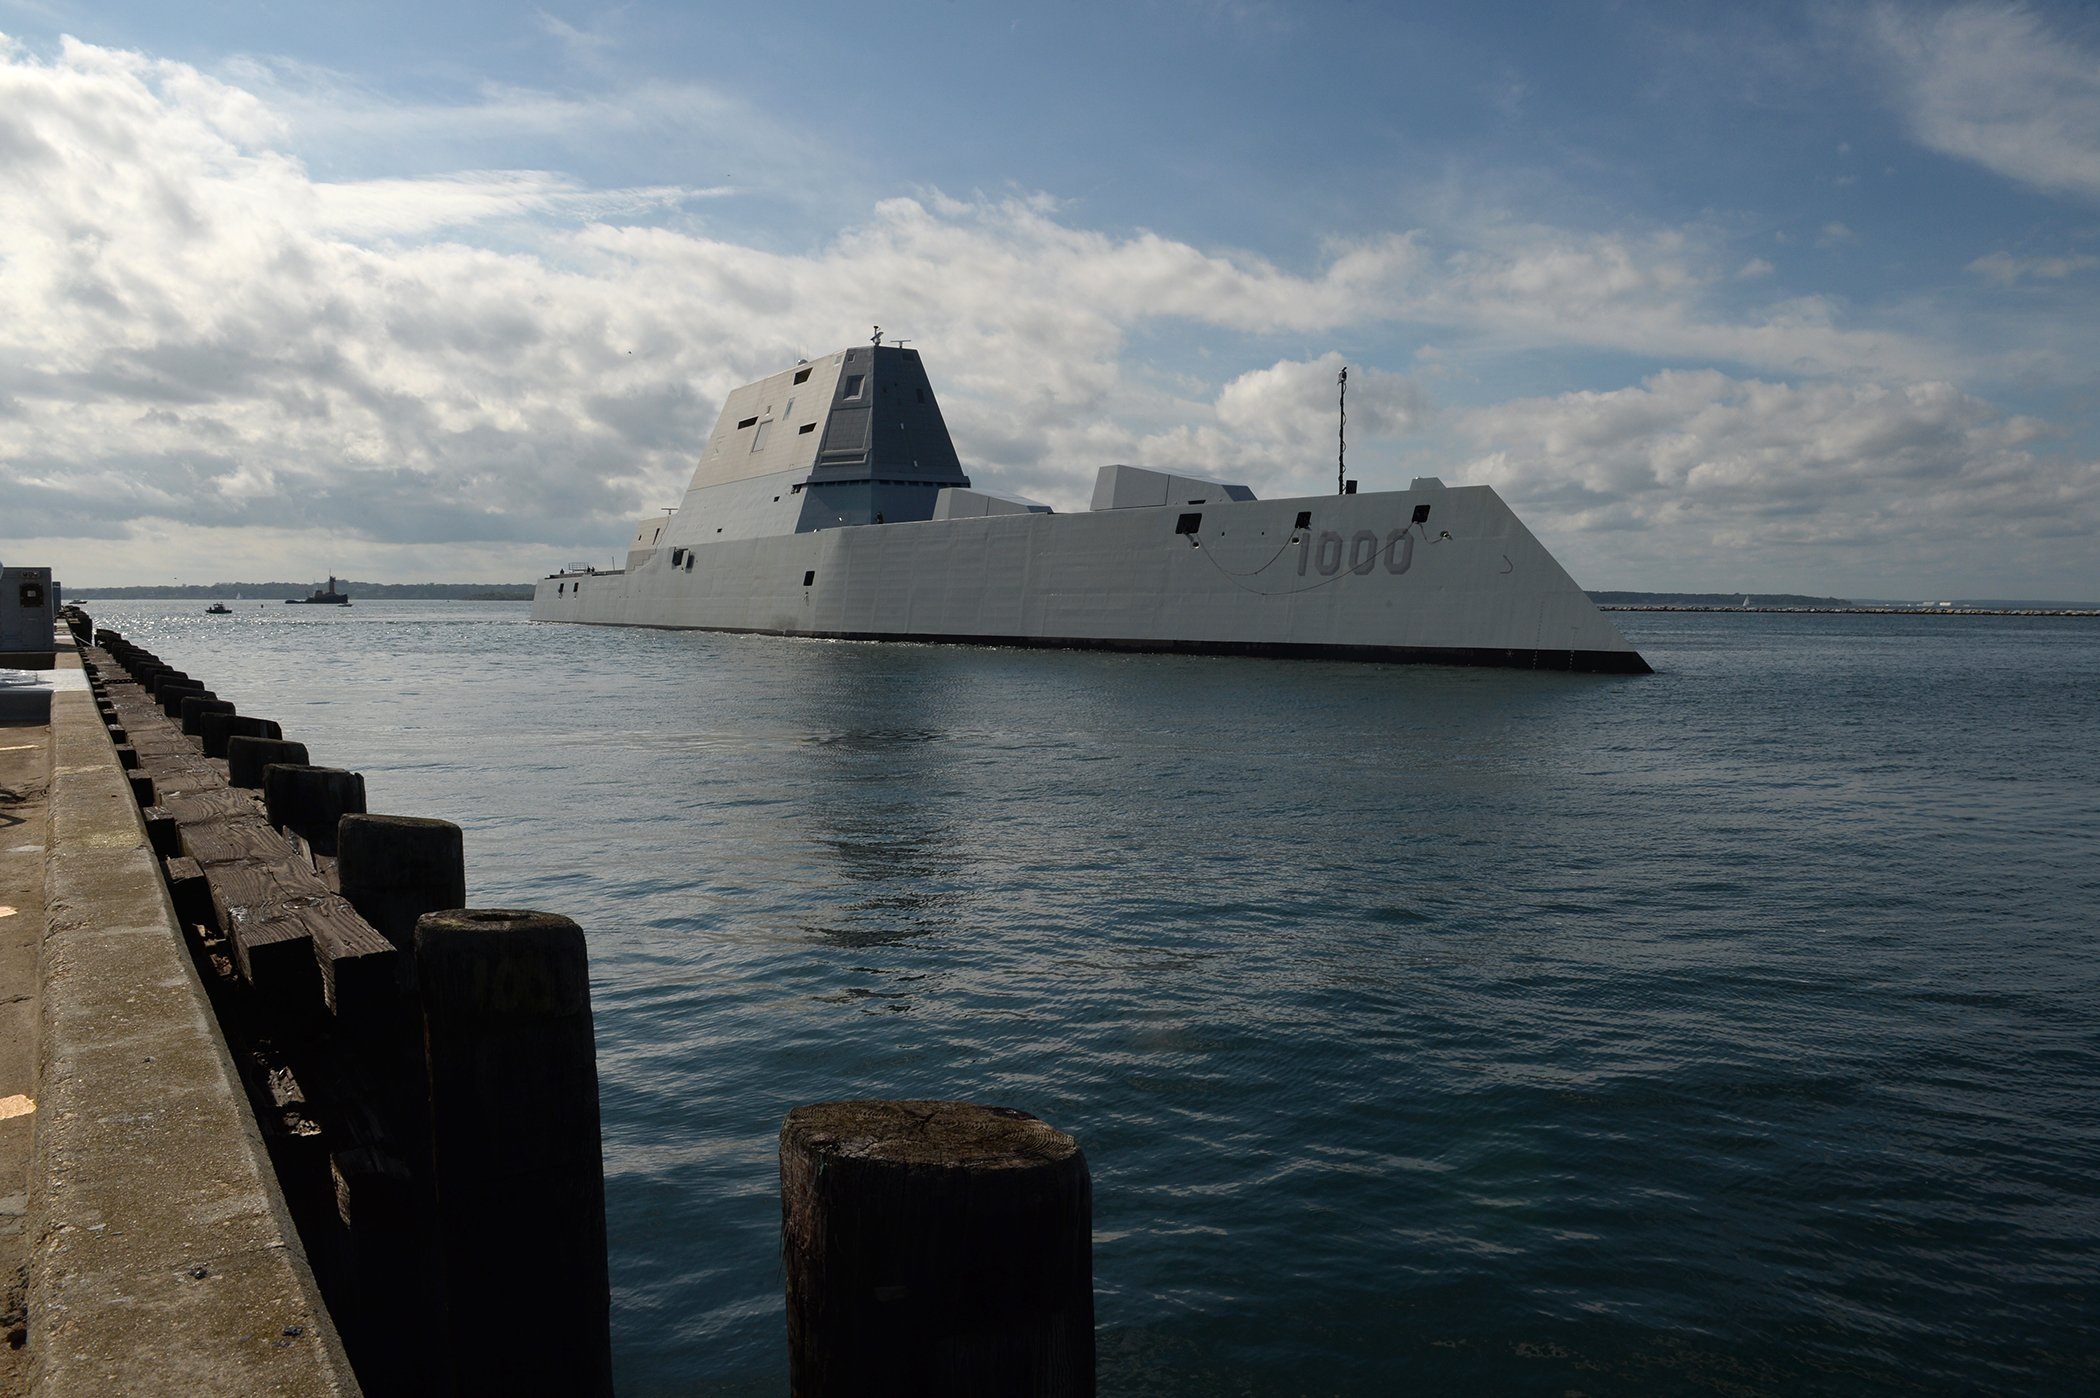 Guided-missile destroyer USS Zumwalt (DDG-1000) arrives at Naval Station Newport on Sept. 8, 2016. US Navy Photo